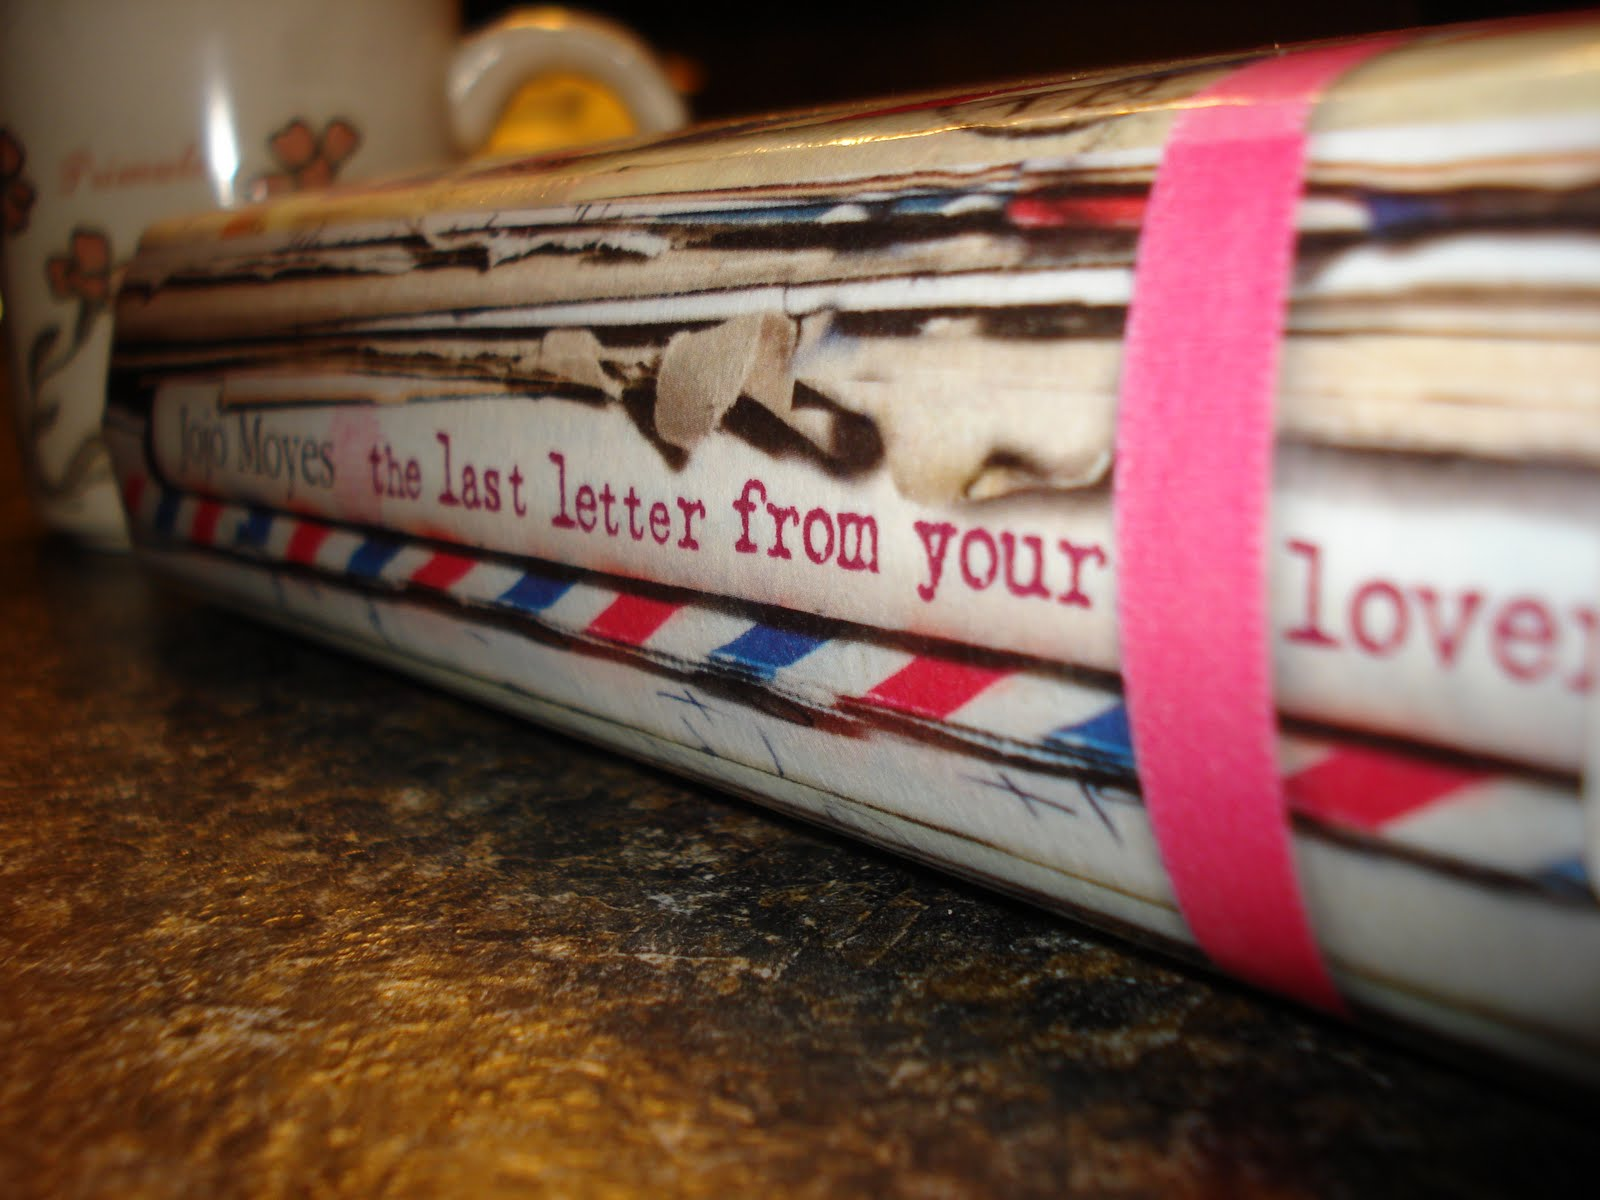 Coffee Tales The Last Letter From Your Lover